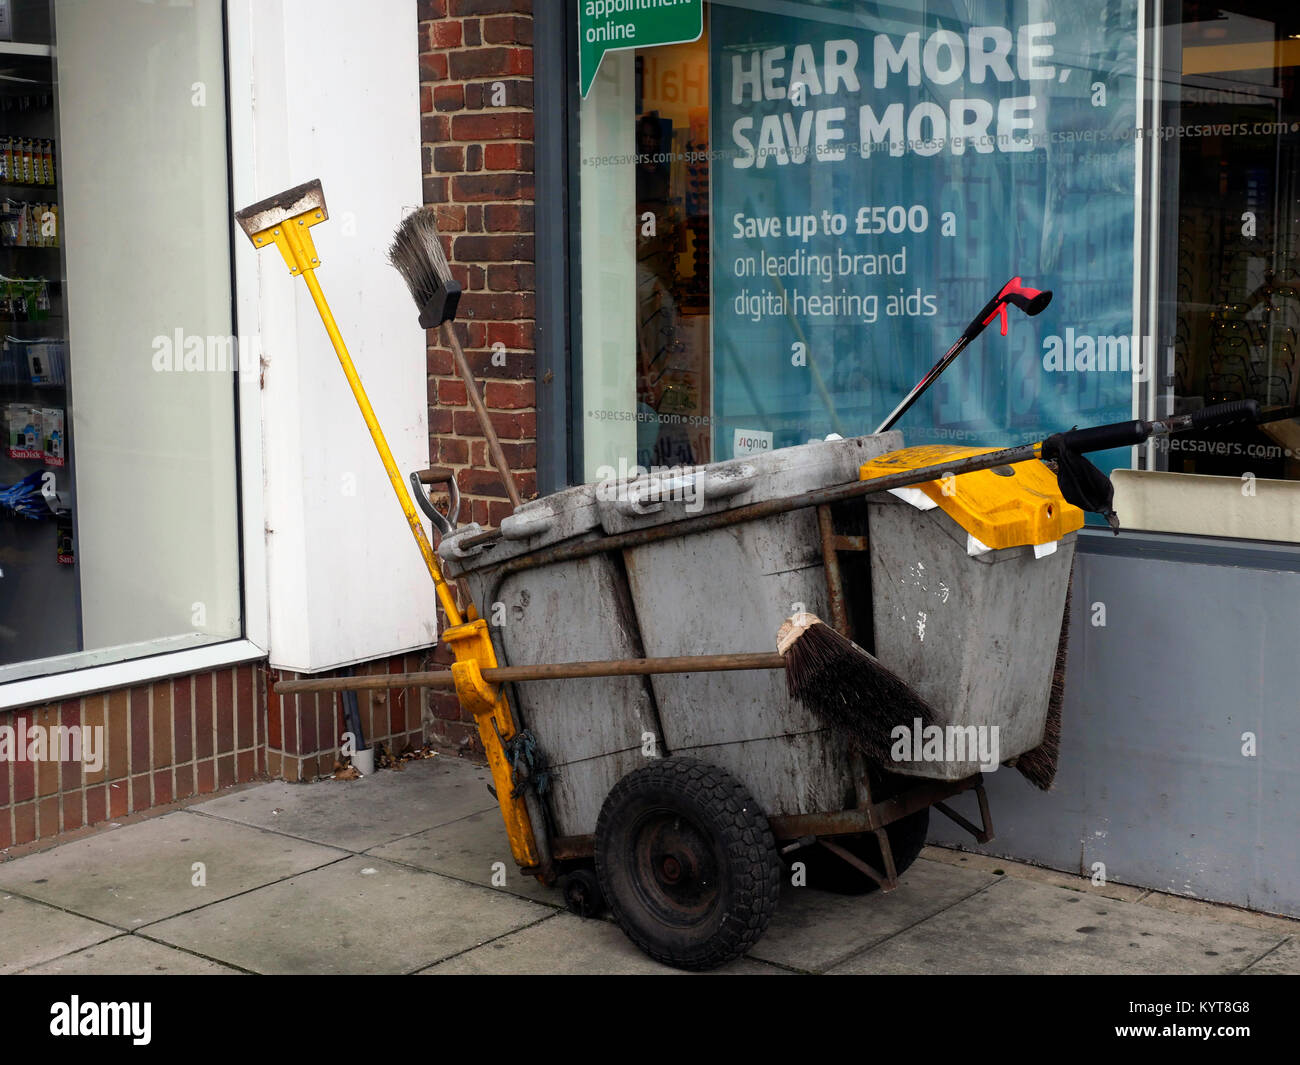 Street sweeper hand dustcart with bins and brushes on High Street, Cosham, Hampshire, England, UK Stock Photo